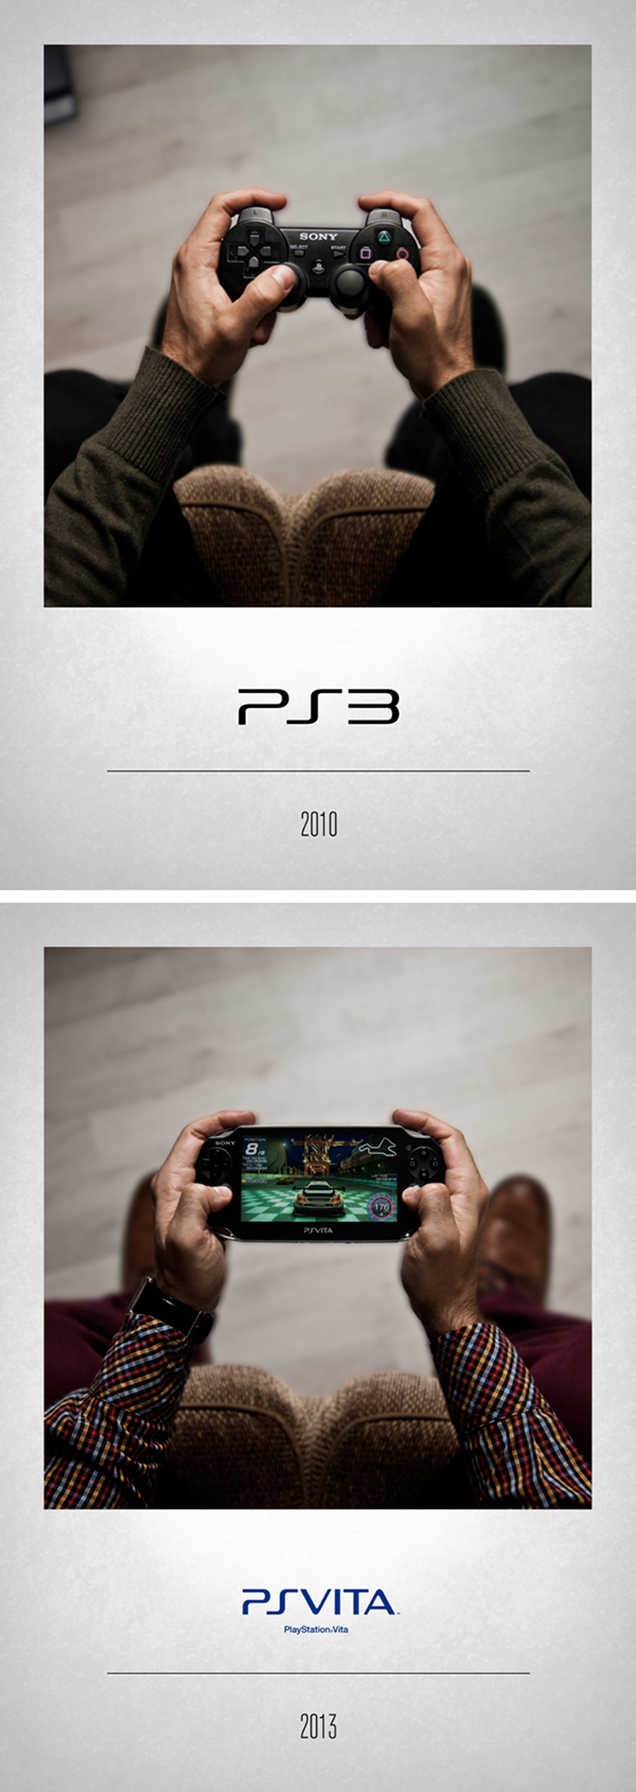 game-consoles-2010-2013.jpg